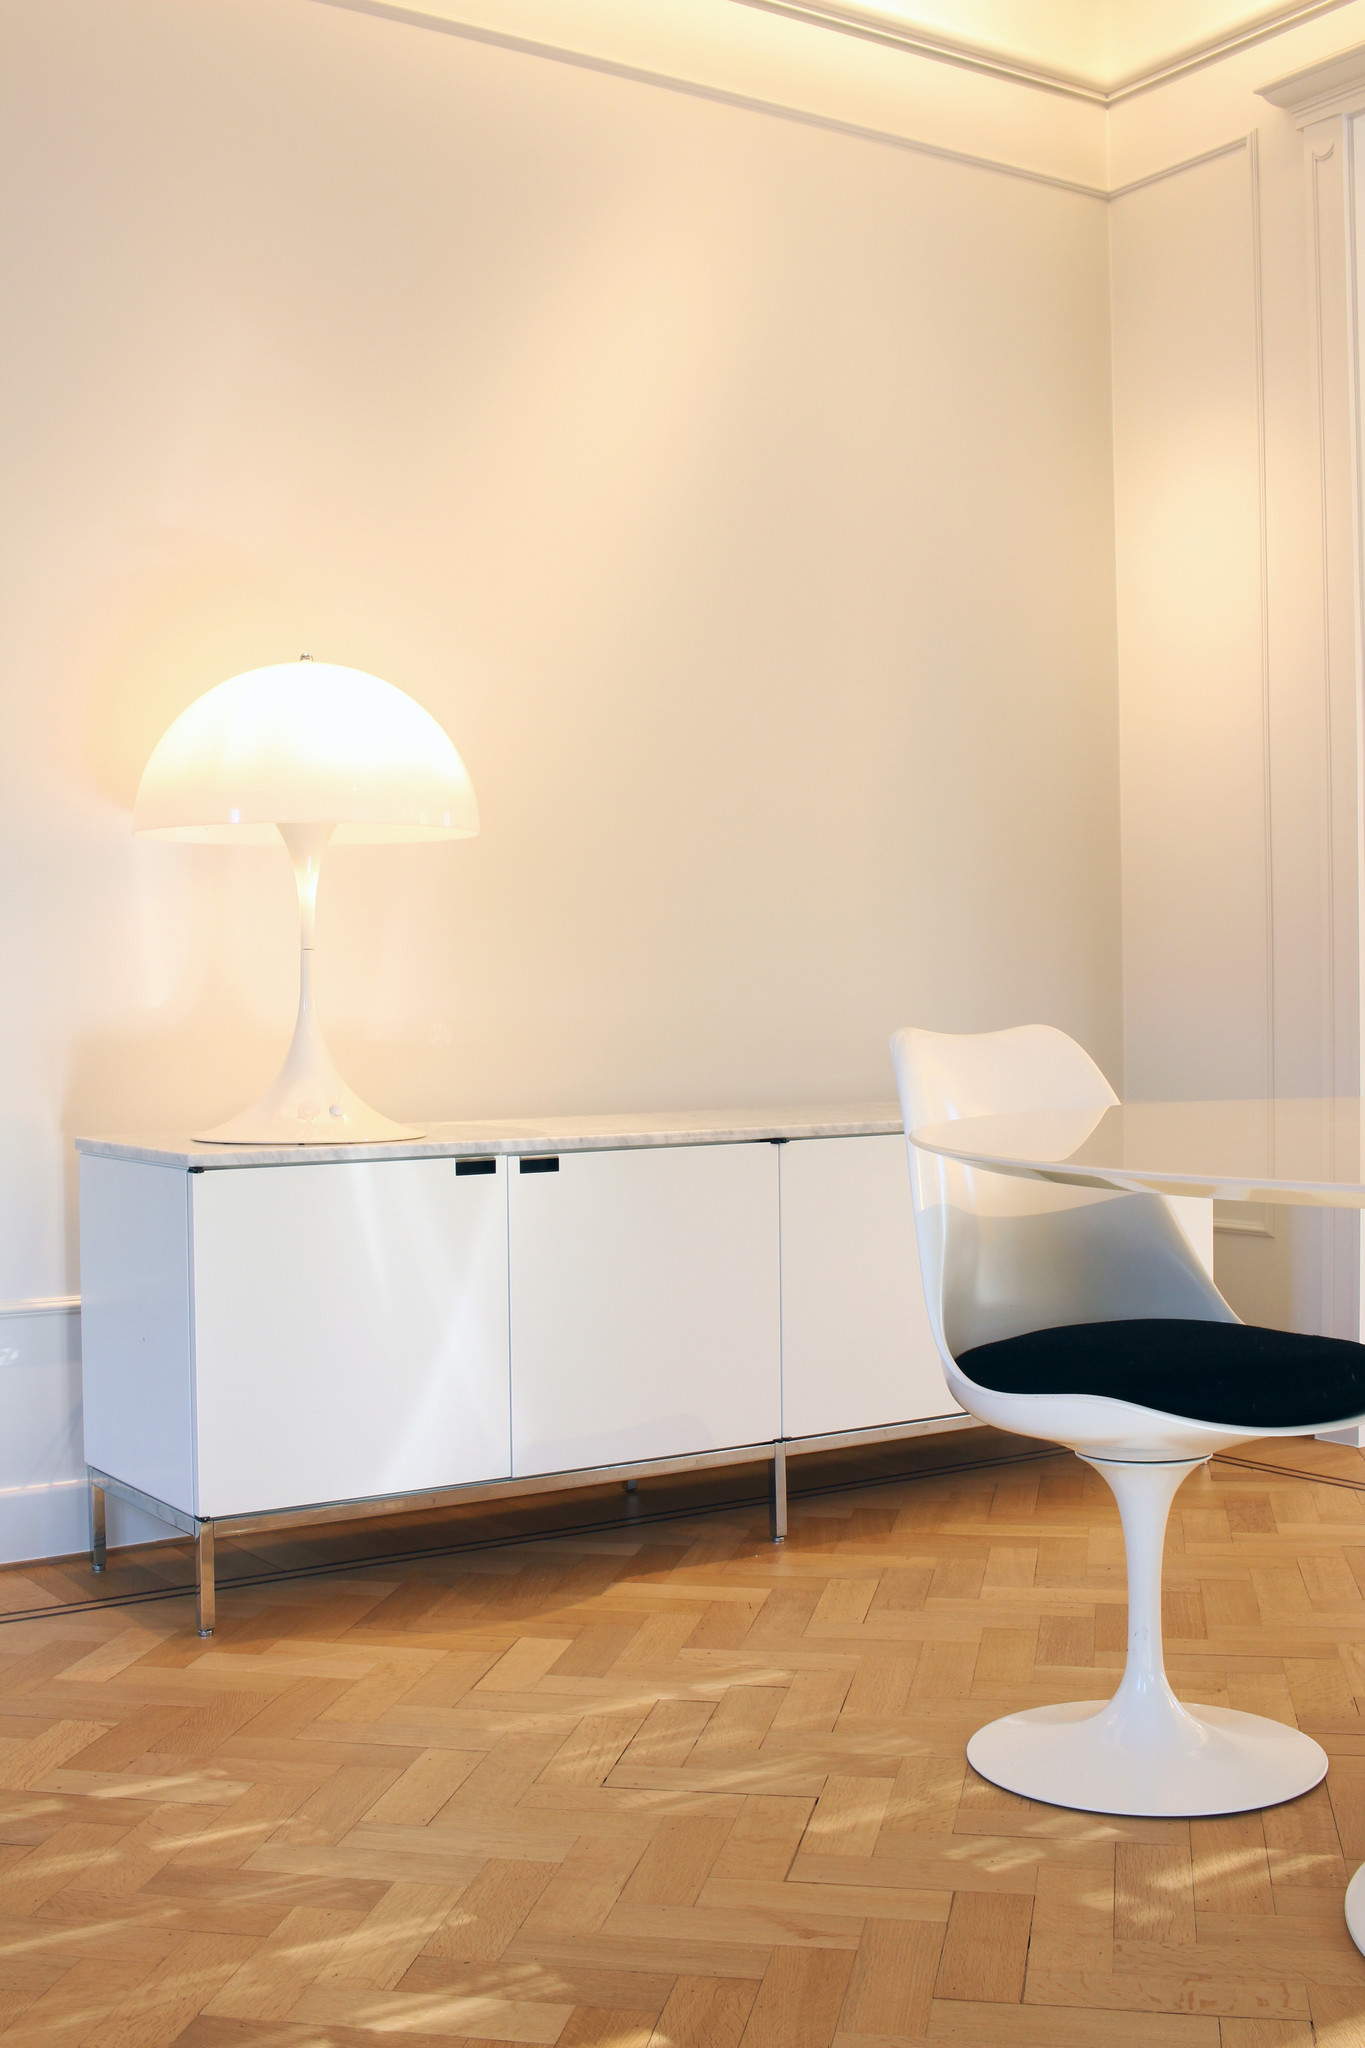 Knoll credenza ontworpen door Florence Knoll, 1961